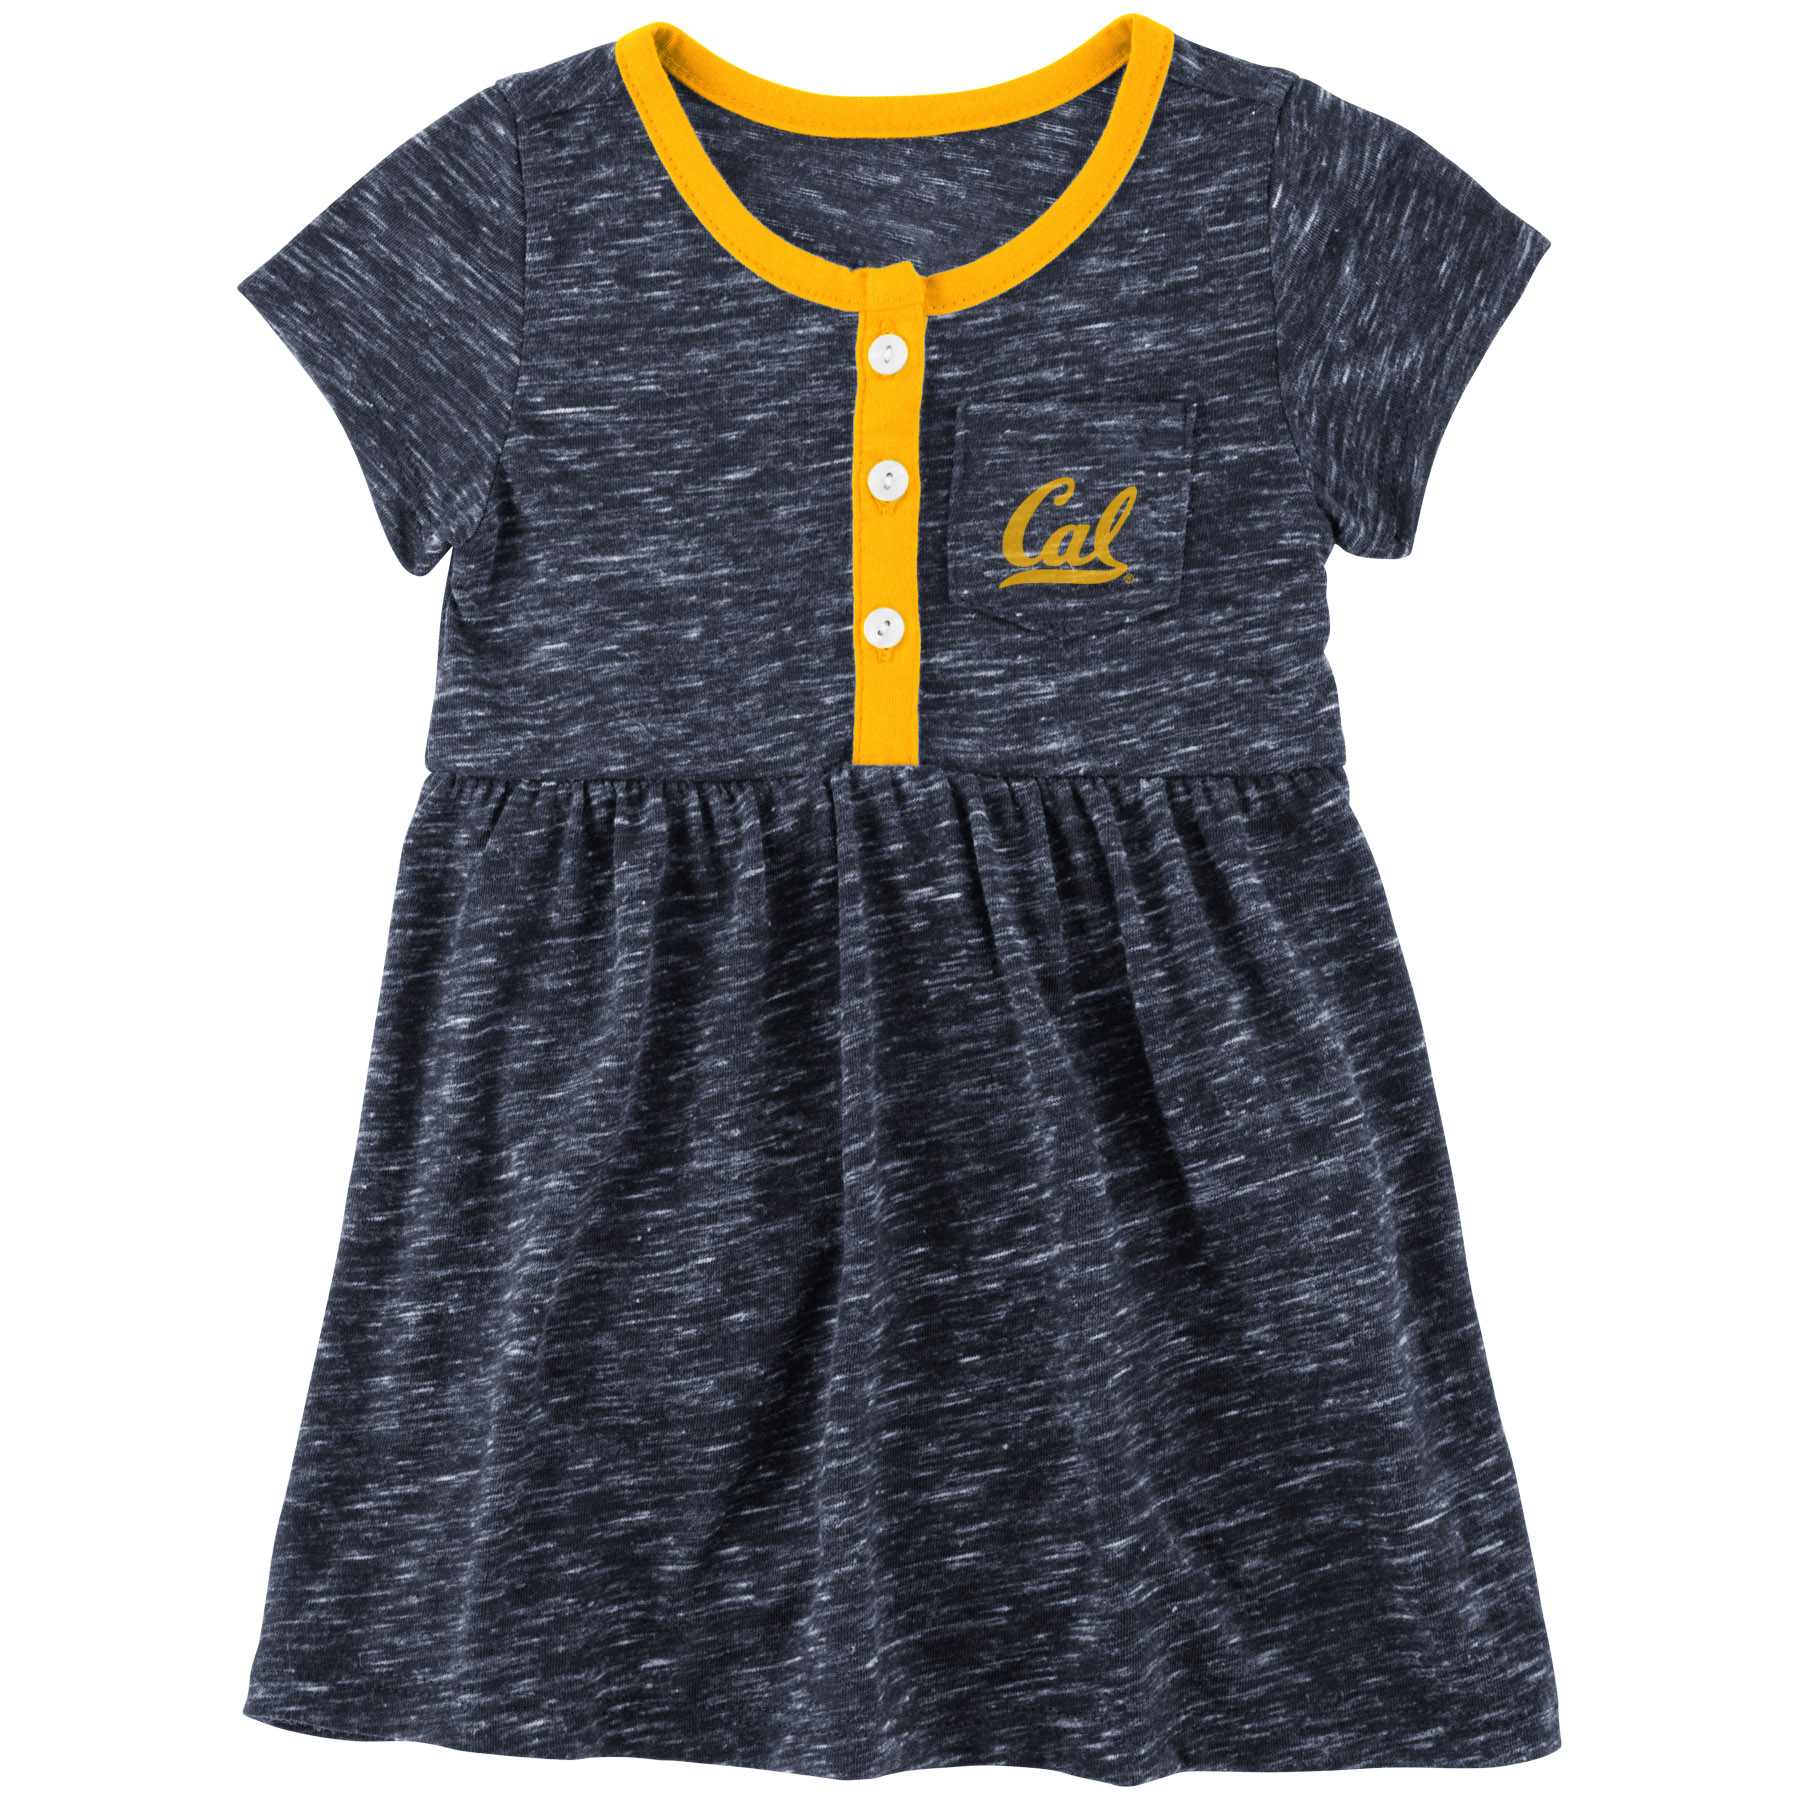 Cal Bears Nuess Infant Girls Dress S19